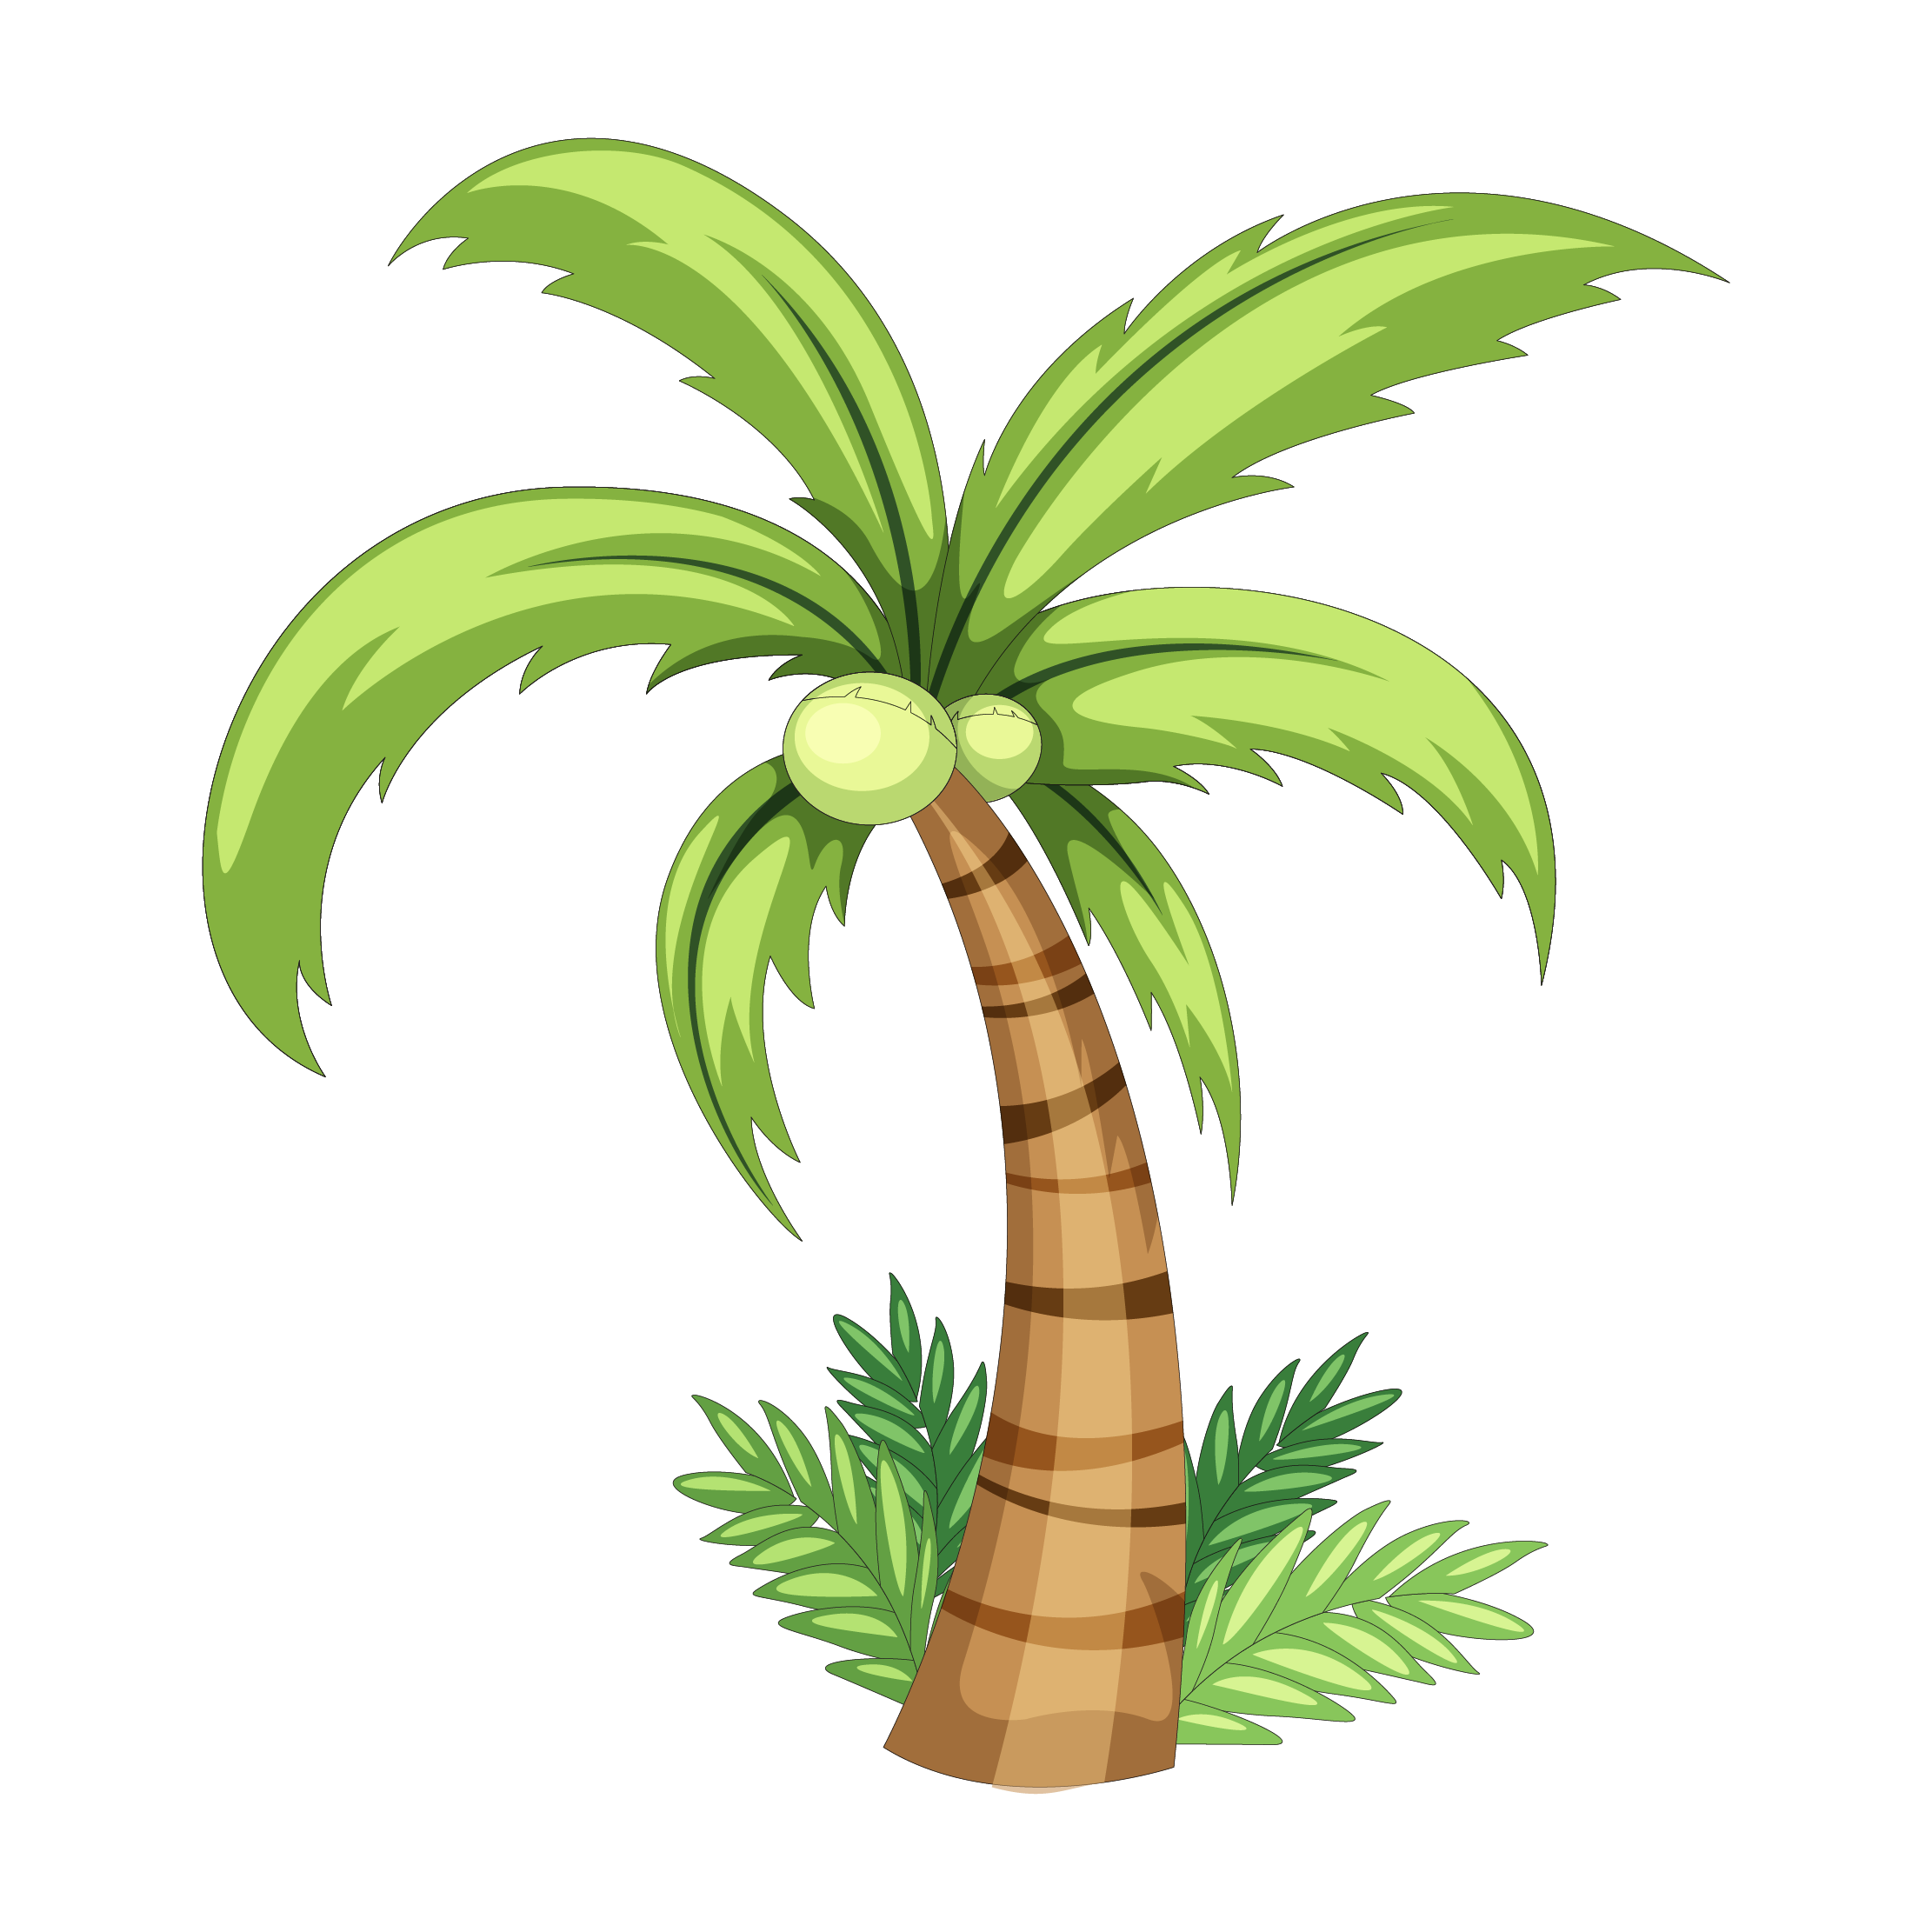 Coconut clipart drawn. Drawing clip art palm